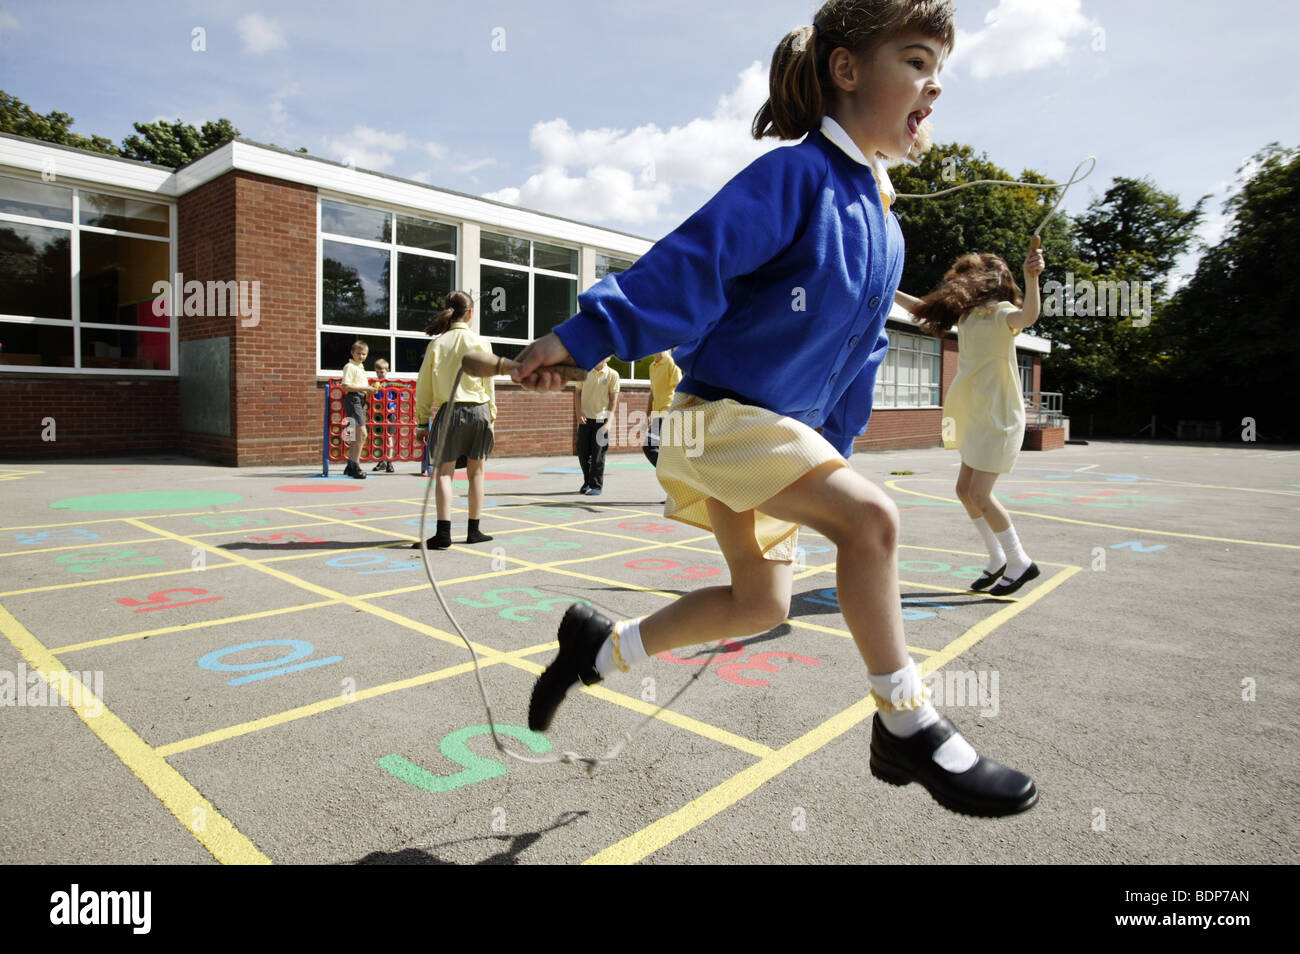 Schoolgirls skipping in a primary school playground in the UK. Stock Photo